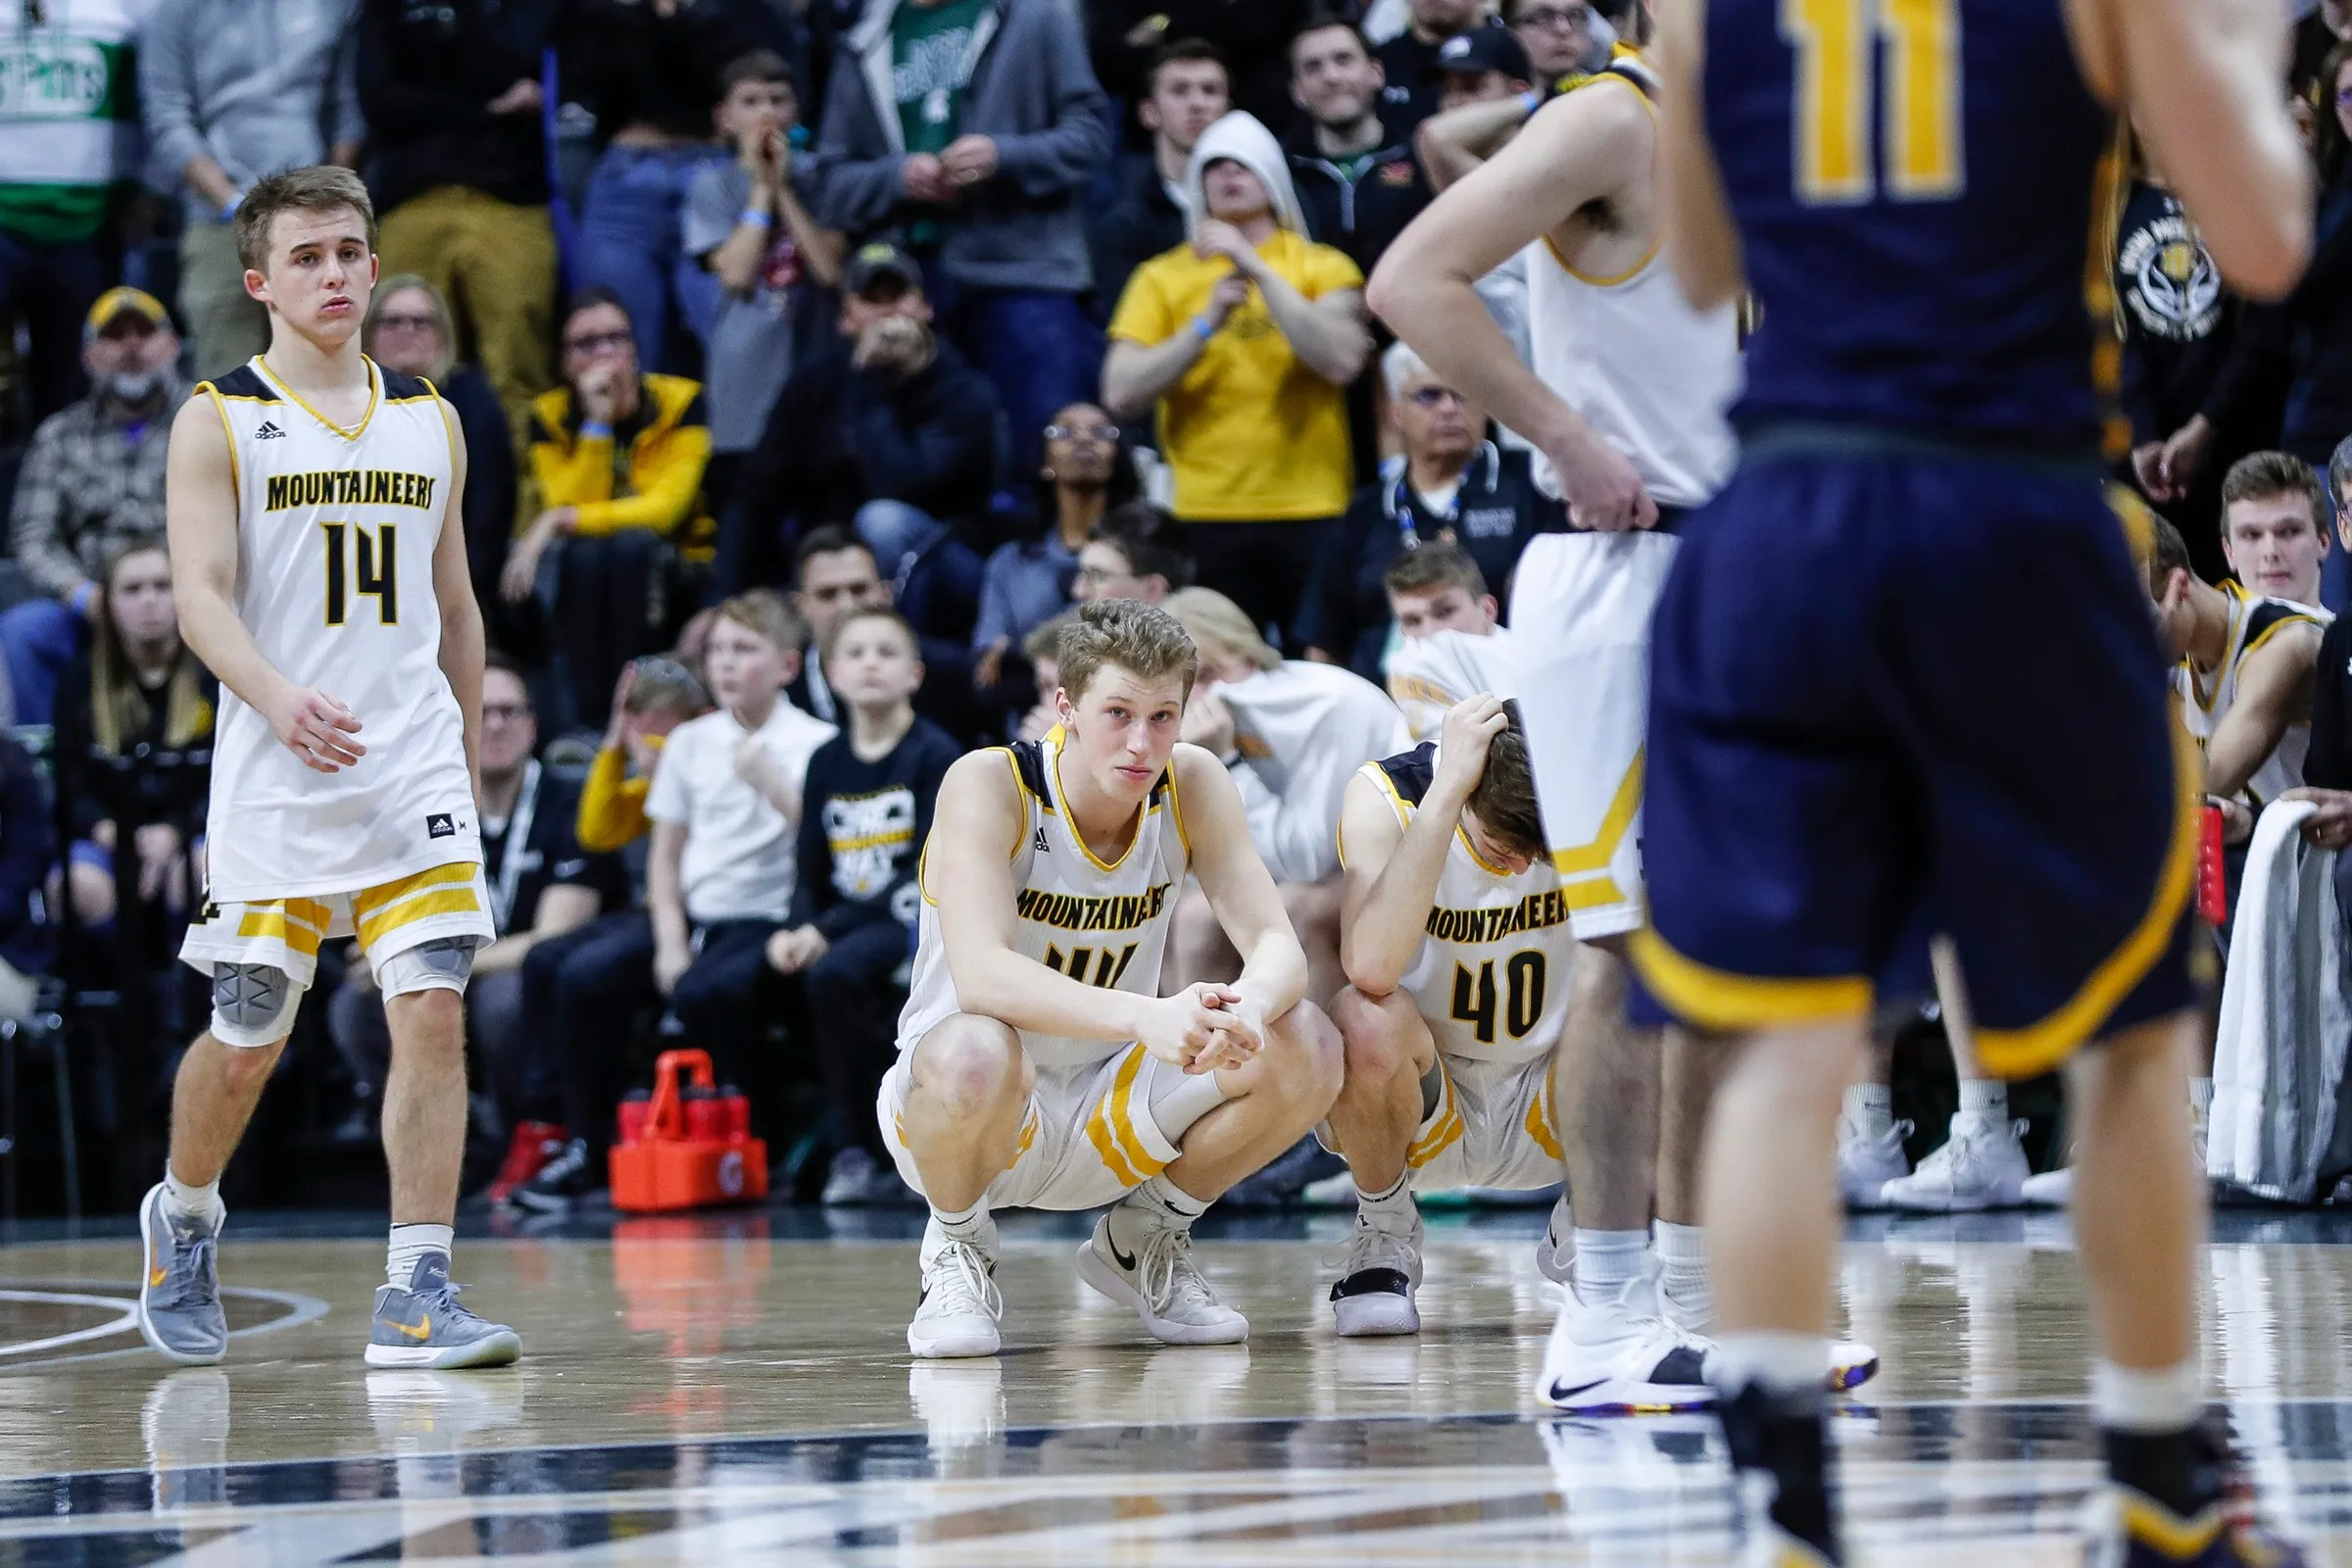 Bad Calls In Mhsaa Basketball State Finals Can Be Avoided